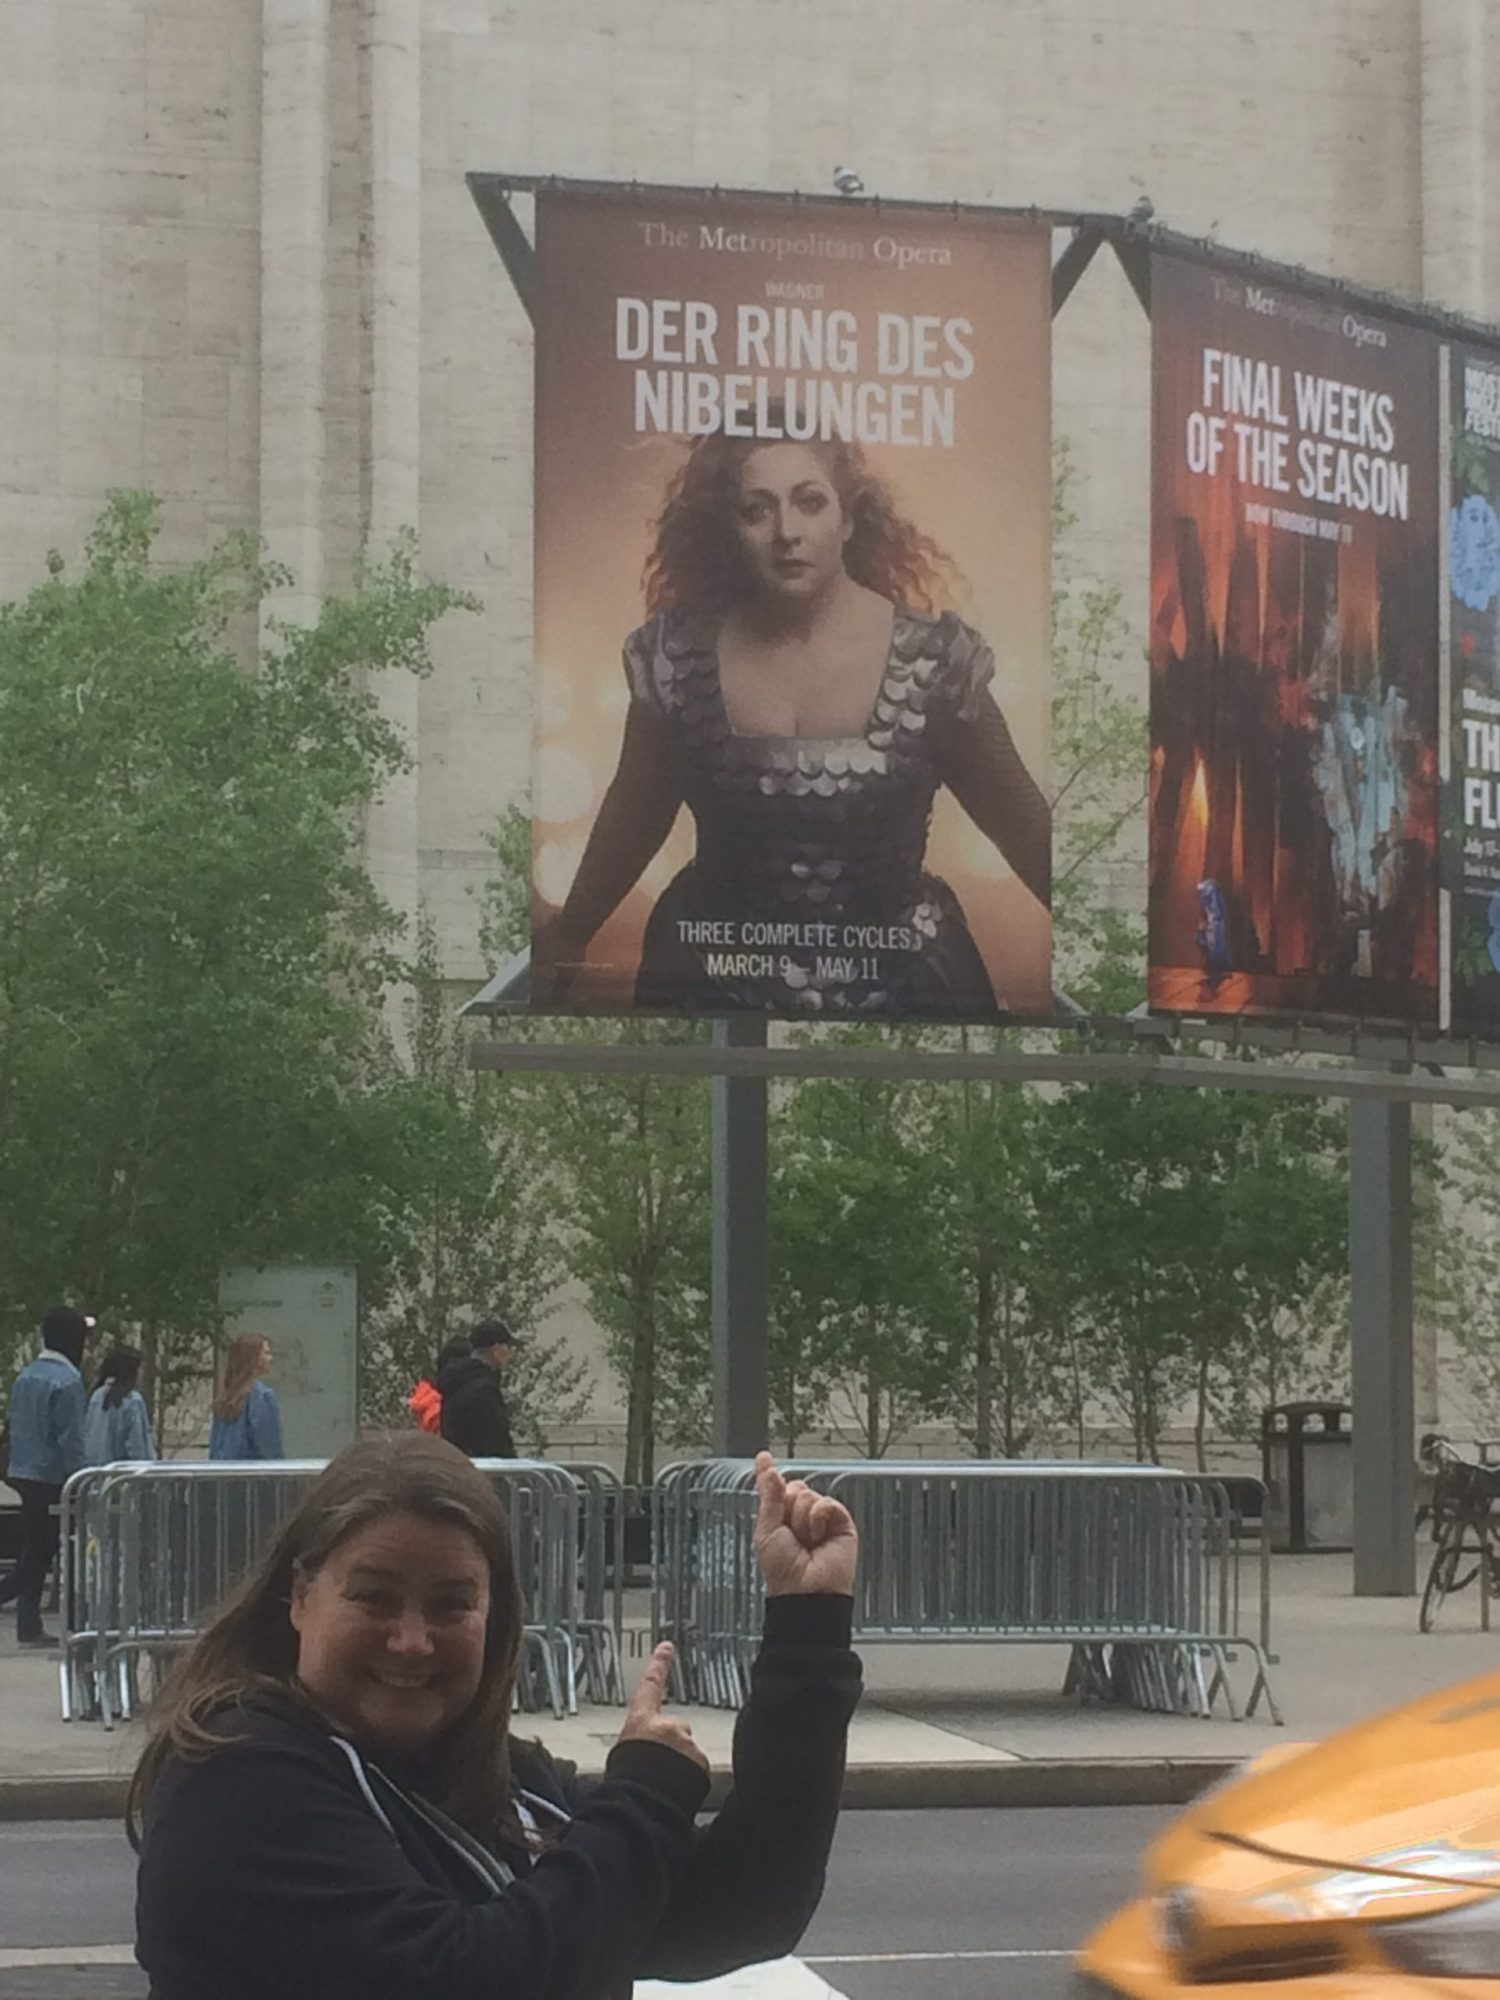 Standing and pointing at the billboard advertisement of the Ring at the Met